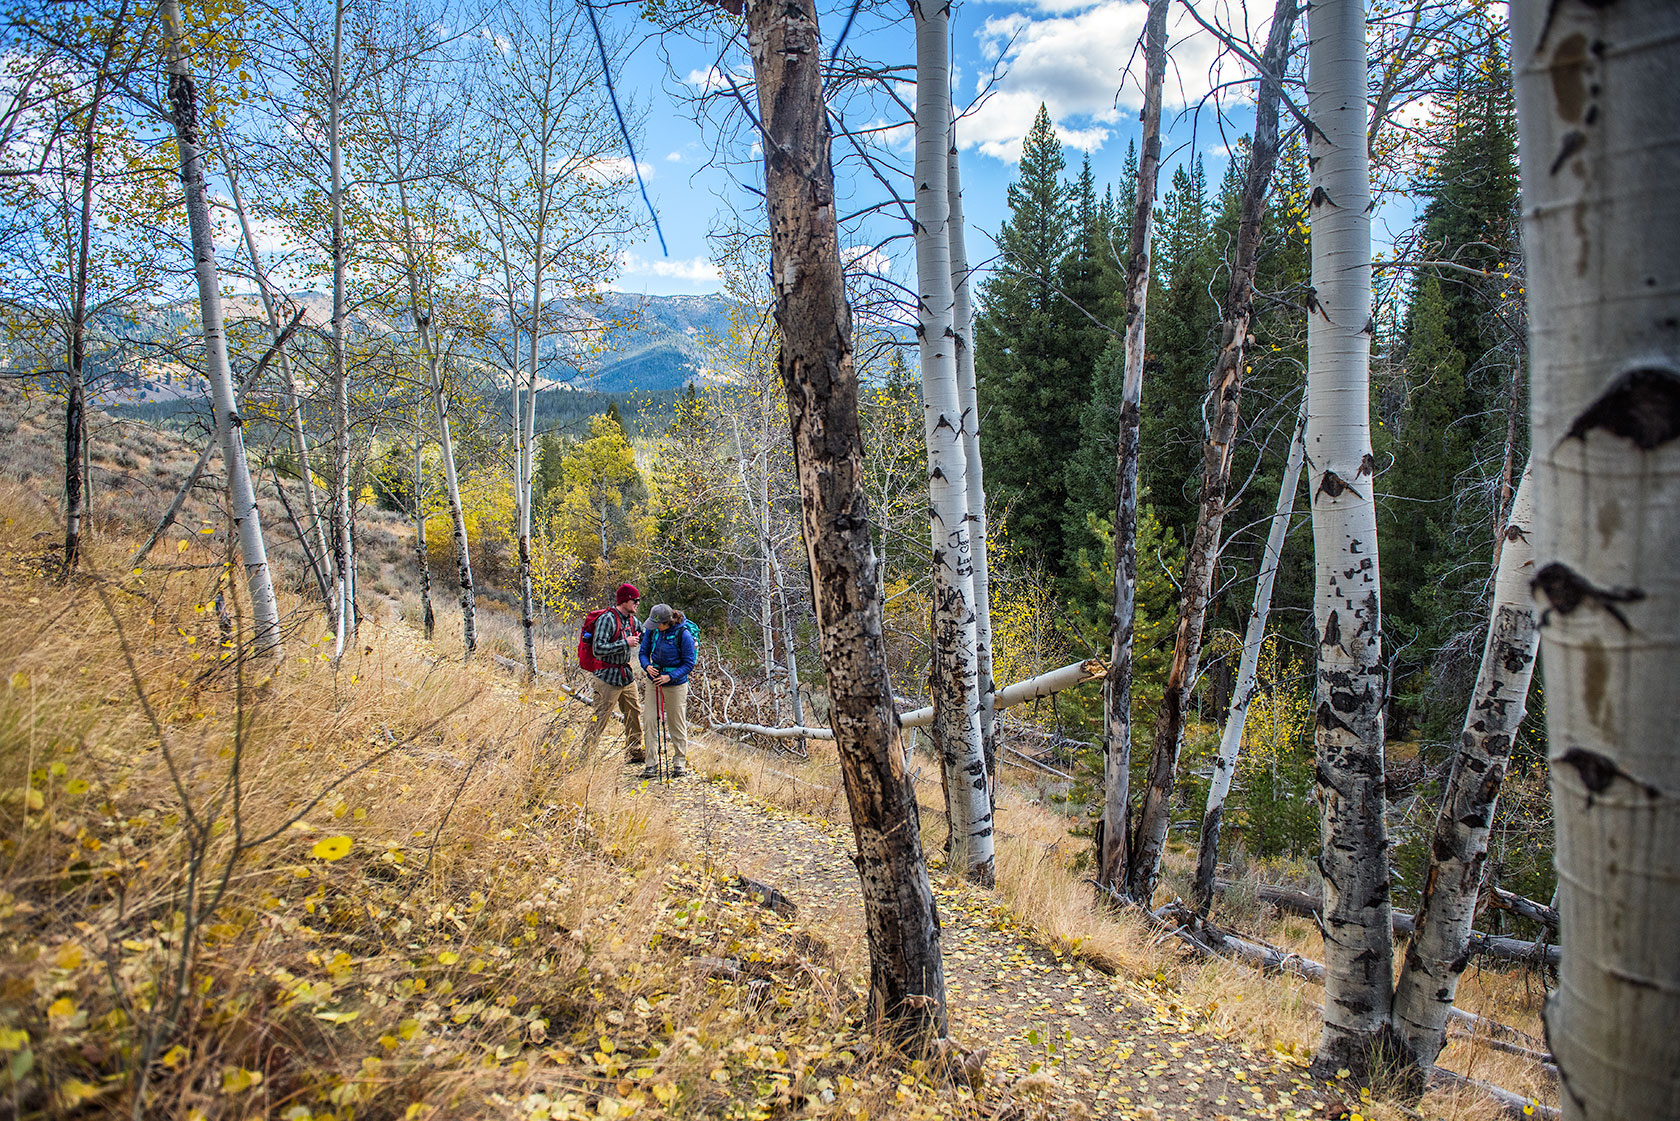 austin-trigg-patagonia-sawtooth-hiking-advenure-wilderness-forest-idaho-outside-lifestyle-day-fall-weather-mountains-couple.jpg